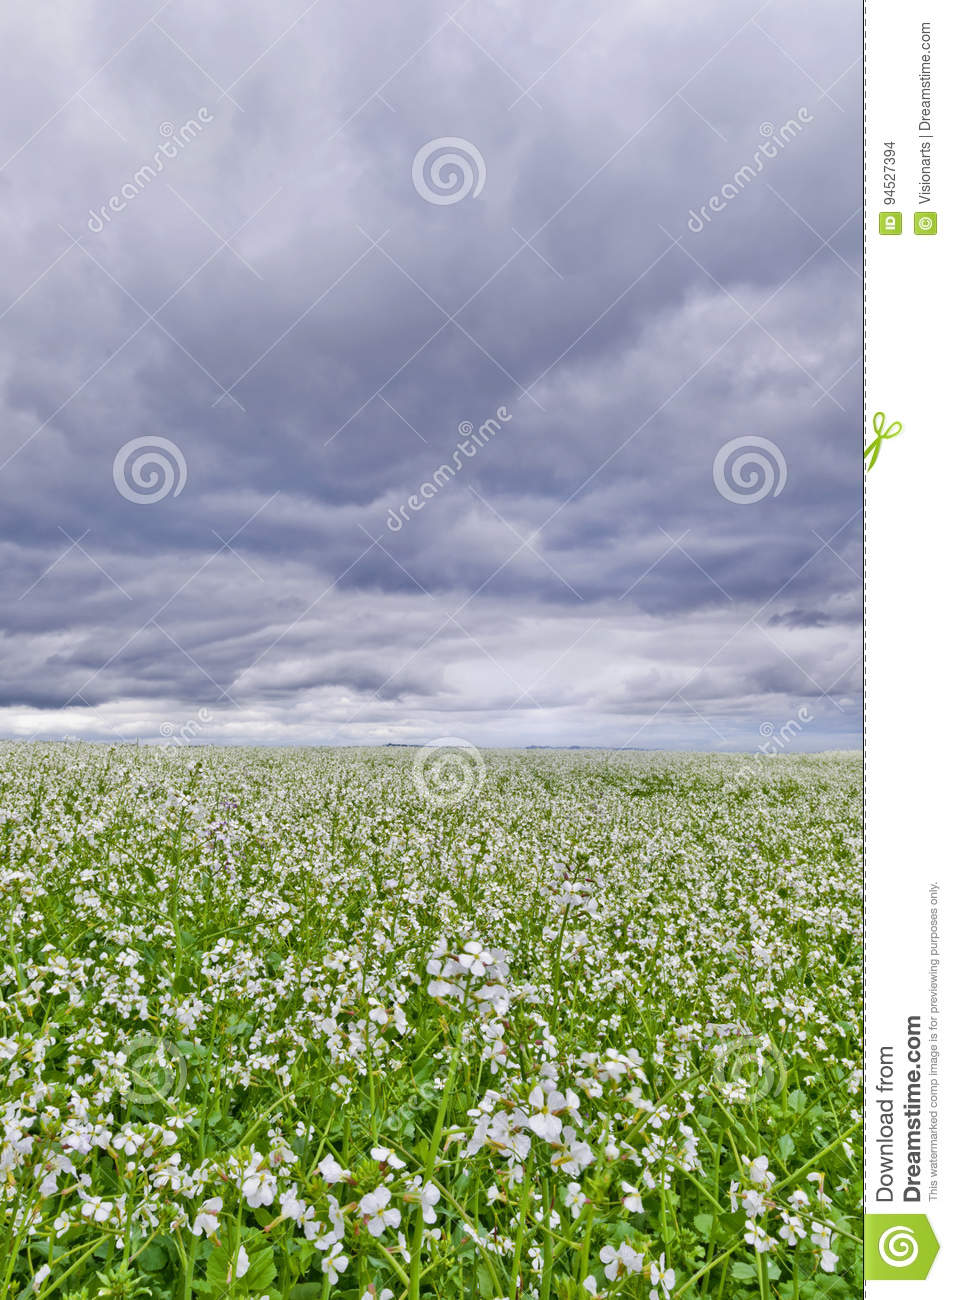 Field Of White Flowers With Storm Clouds Overhead Stock Photo